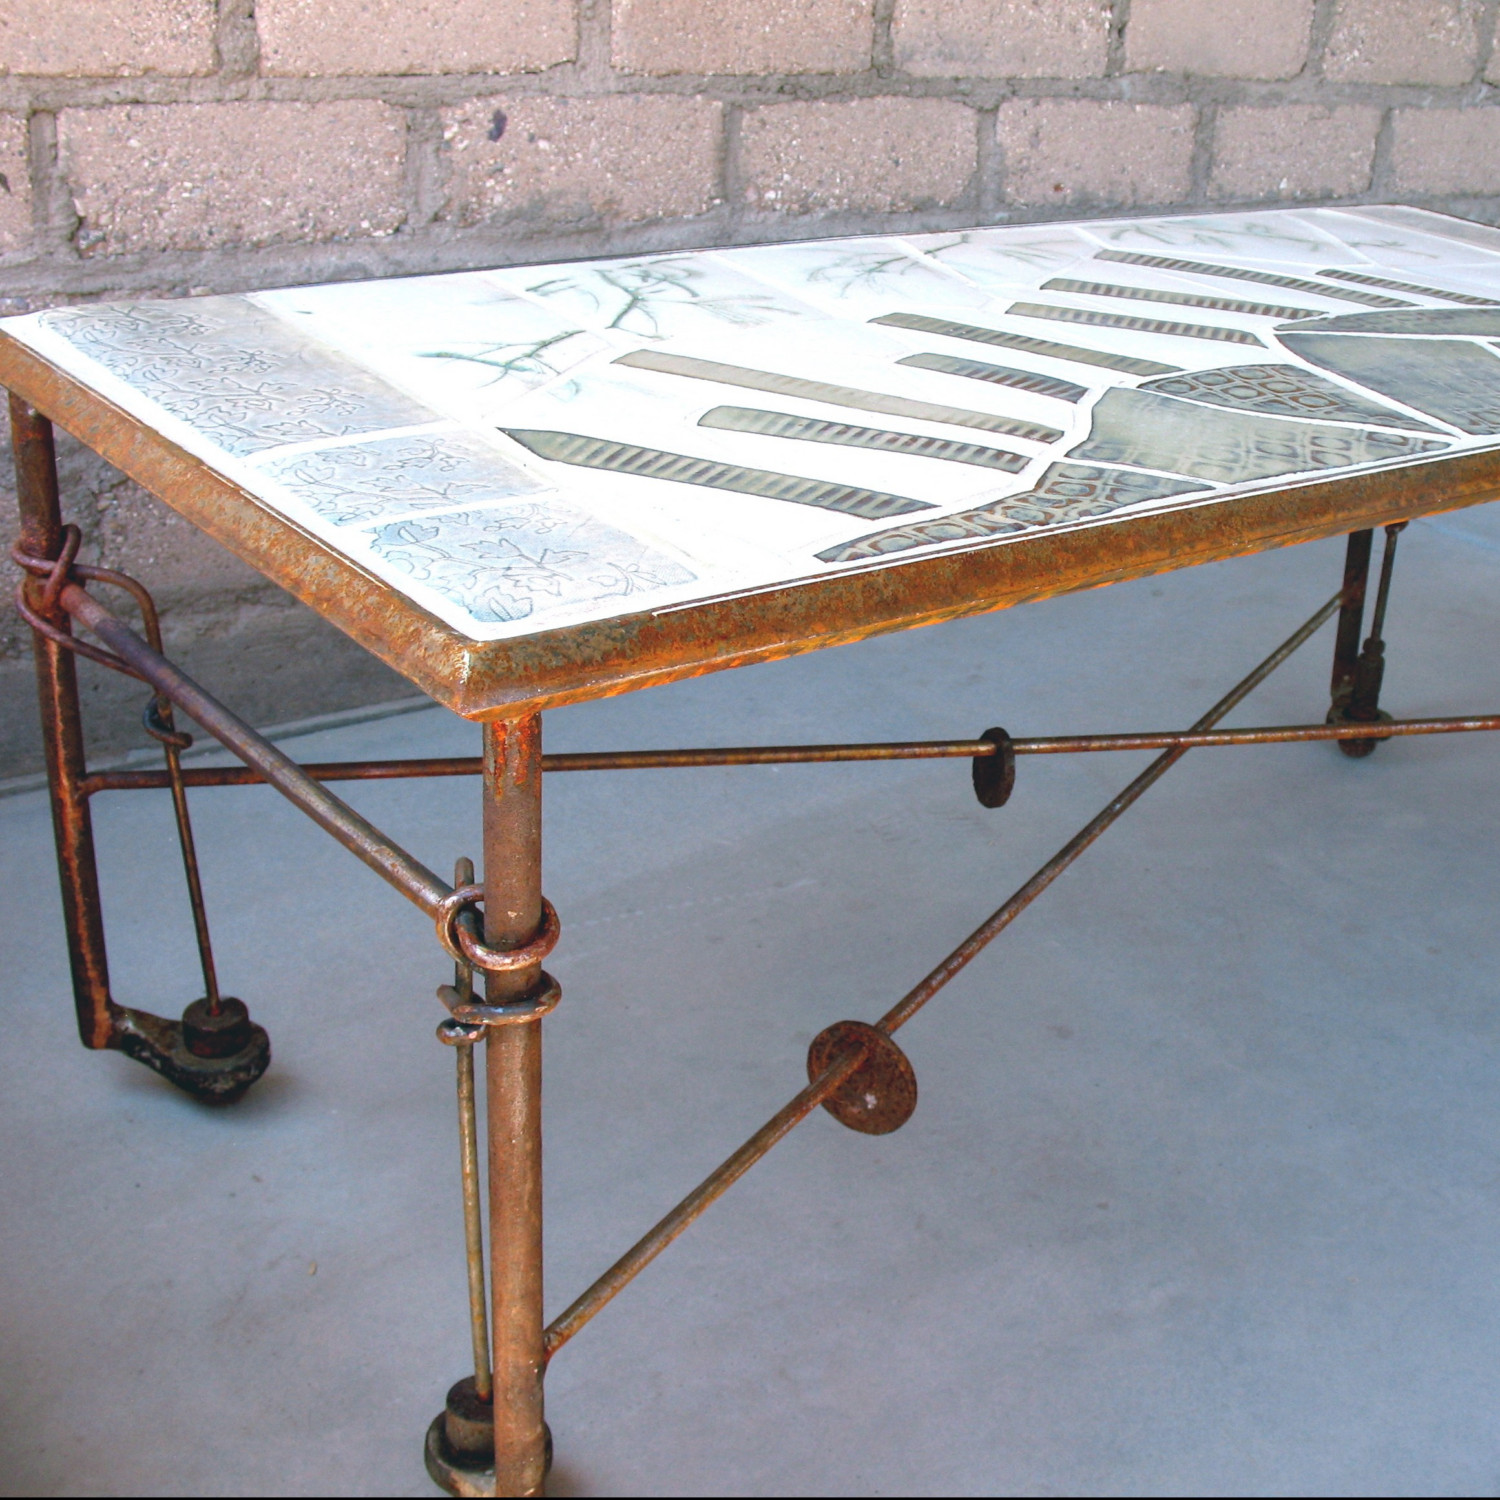 Neil Collins Artist Original Hand Made Ceramic Tile And Steel Coffee Table